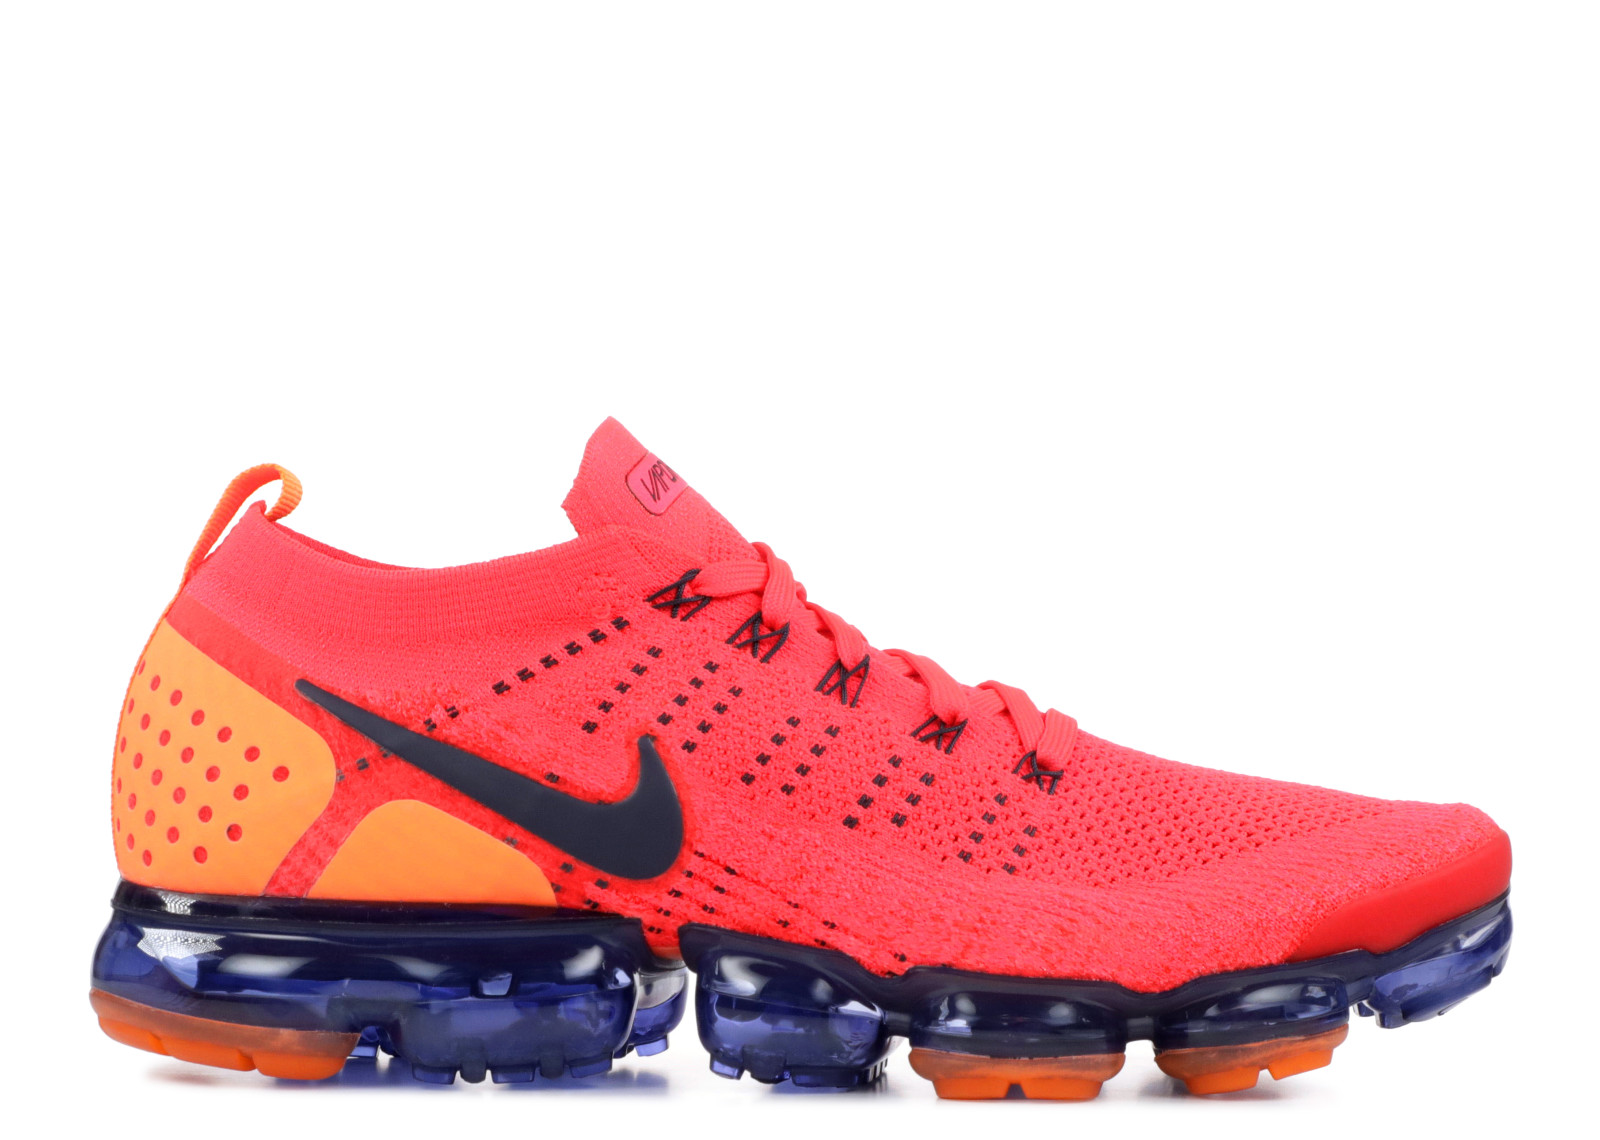 9144a4b83b968 Nike Air VaporMax 2 Spiderman - 0